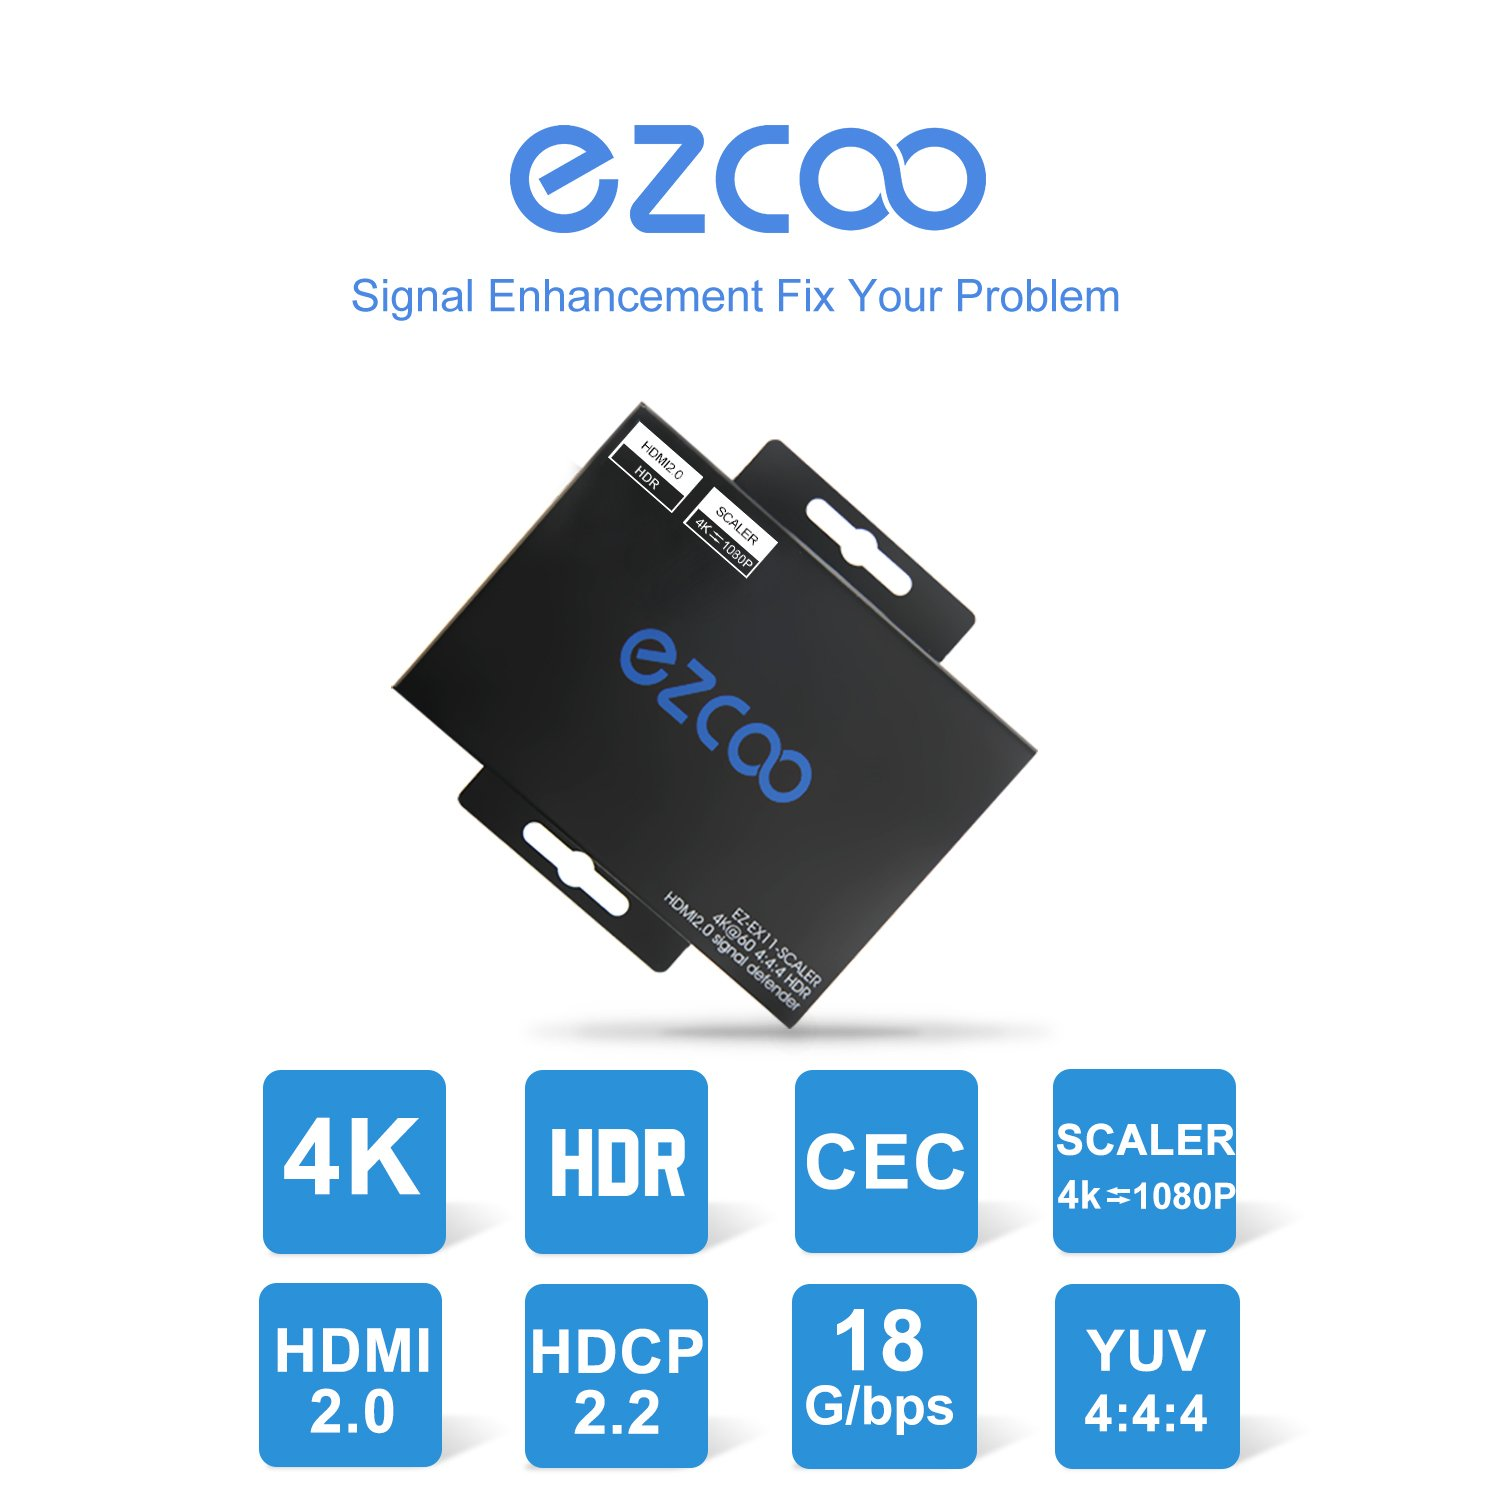 4K HDMI 2.0 Repeater HDR Dolby Vision, HDMI Up Scaler sacling & HDMI Down Scaler scaling,HDMI Adapter 4K@60Hz (4:4:4) 18Gbps,HDMI HDCP Booster,HDMI Signal Amplifier,HDMI Extender Up to 200ft (60m),CEC